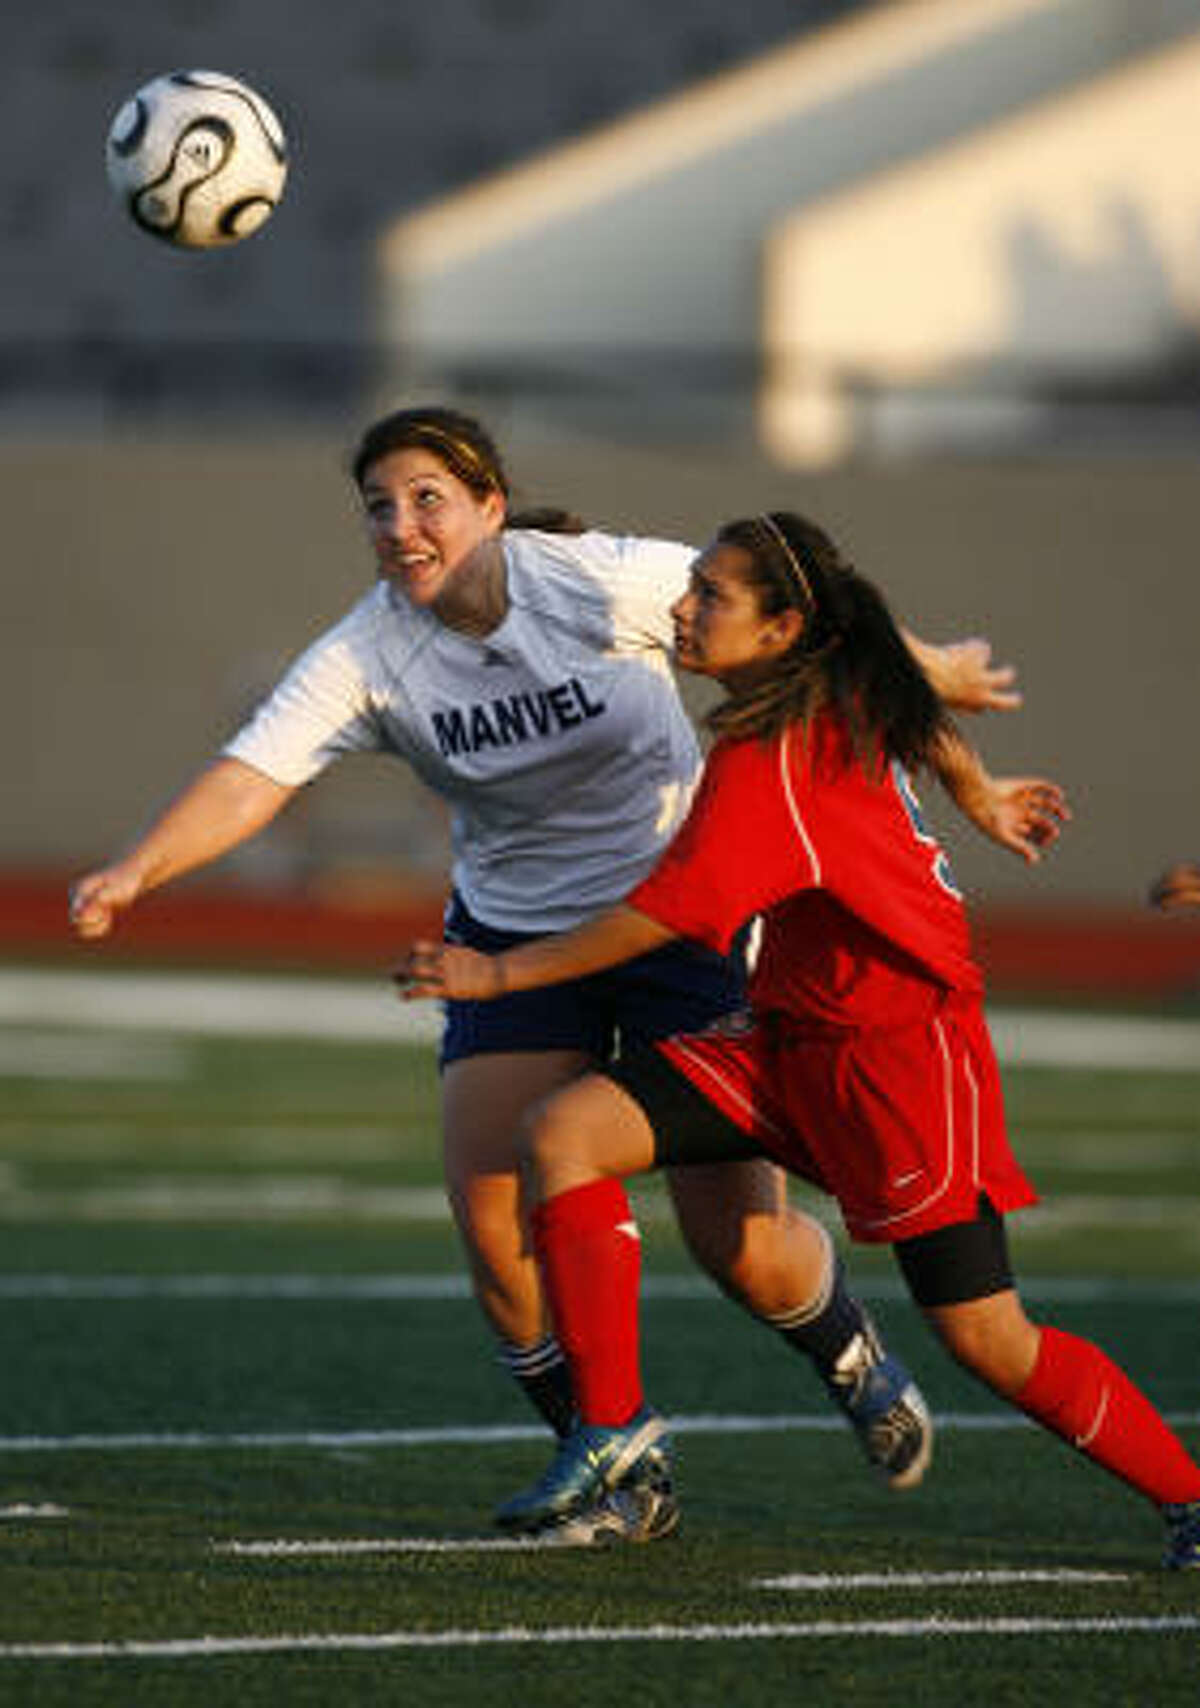 Goose Creek Memorial's Brittany Garza, right, and Manvel's Ellen Smith fight for control of the ball.